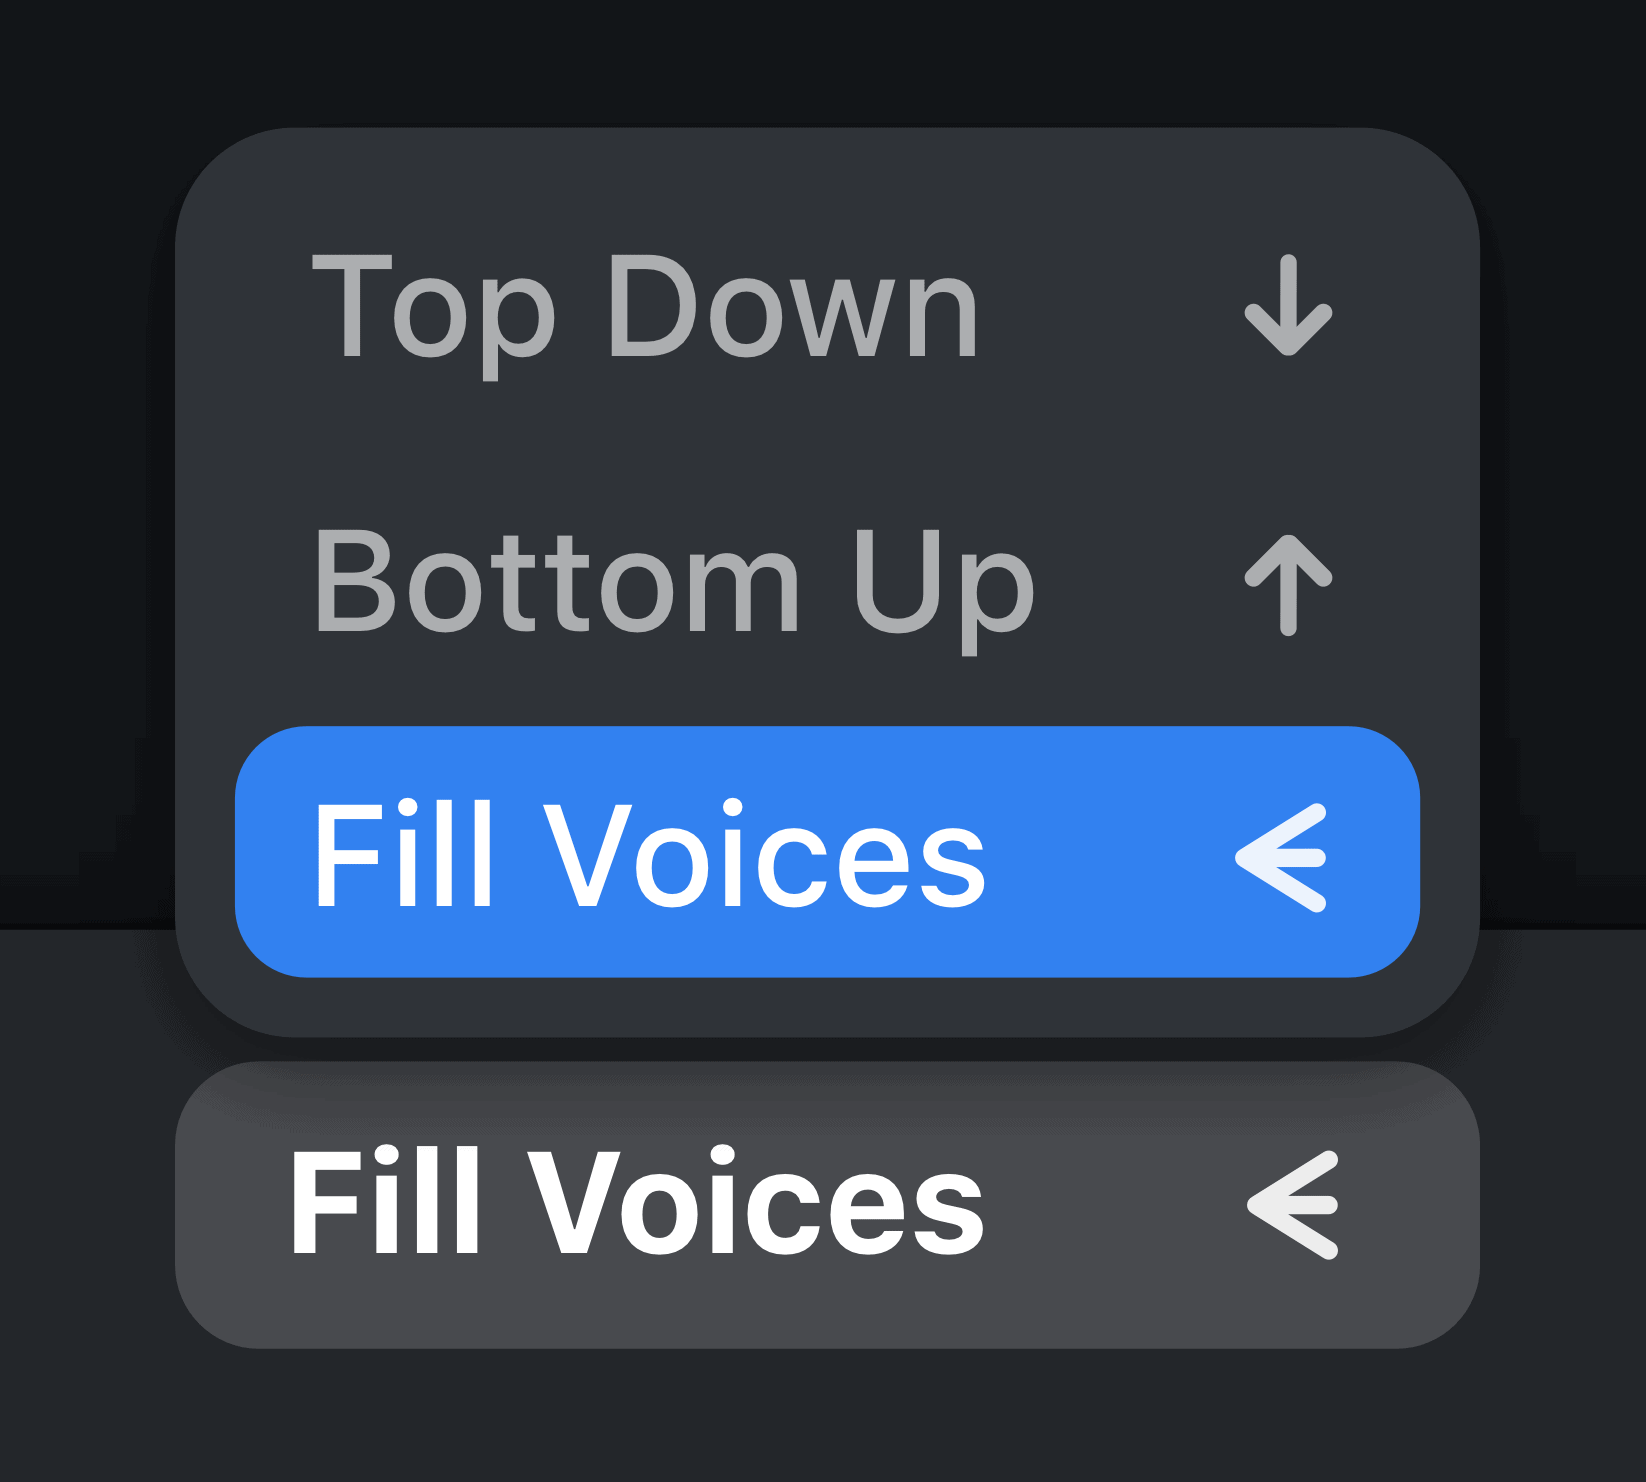 Choose between three different Divisi Modes to split up into the right number of voices